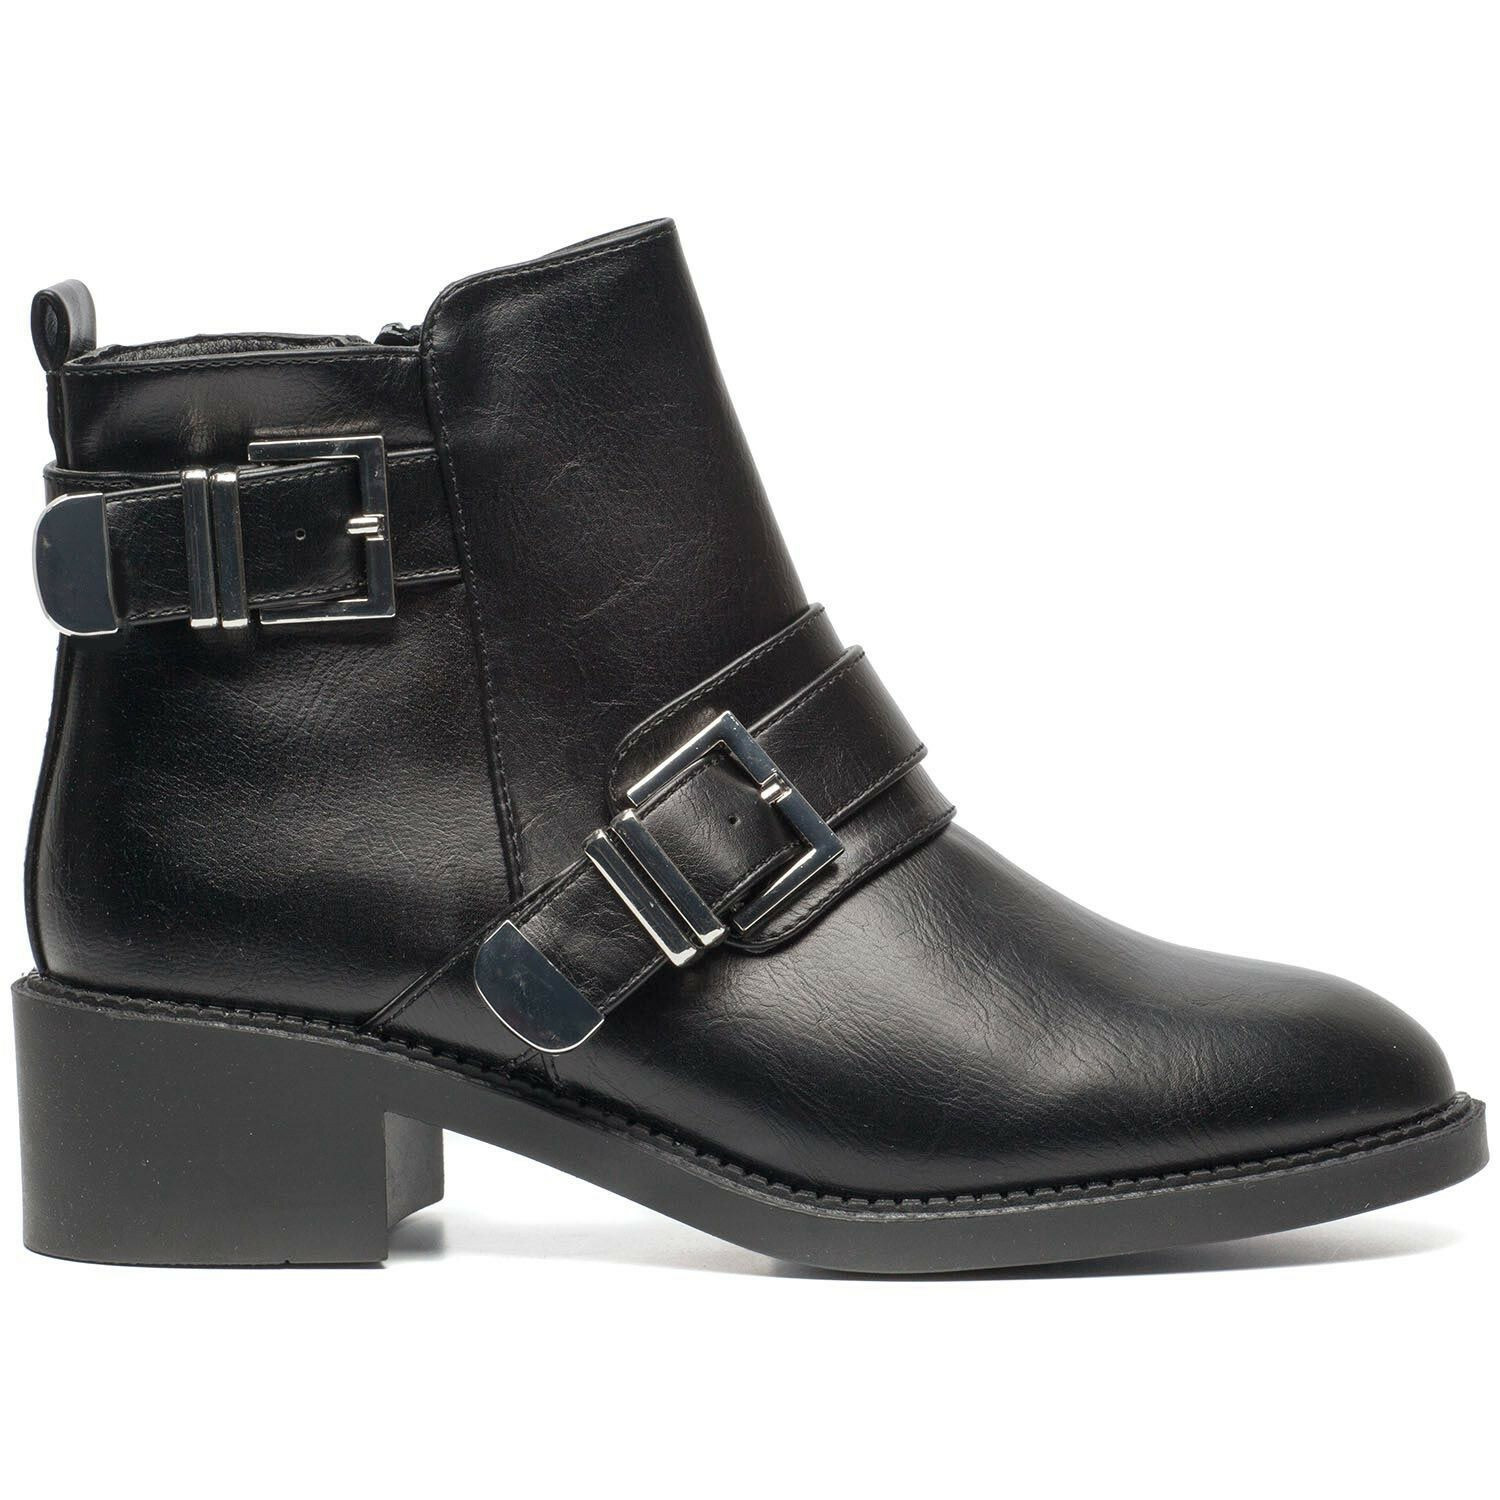 THE MINIMALIST BUCKLE BOOTS